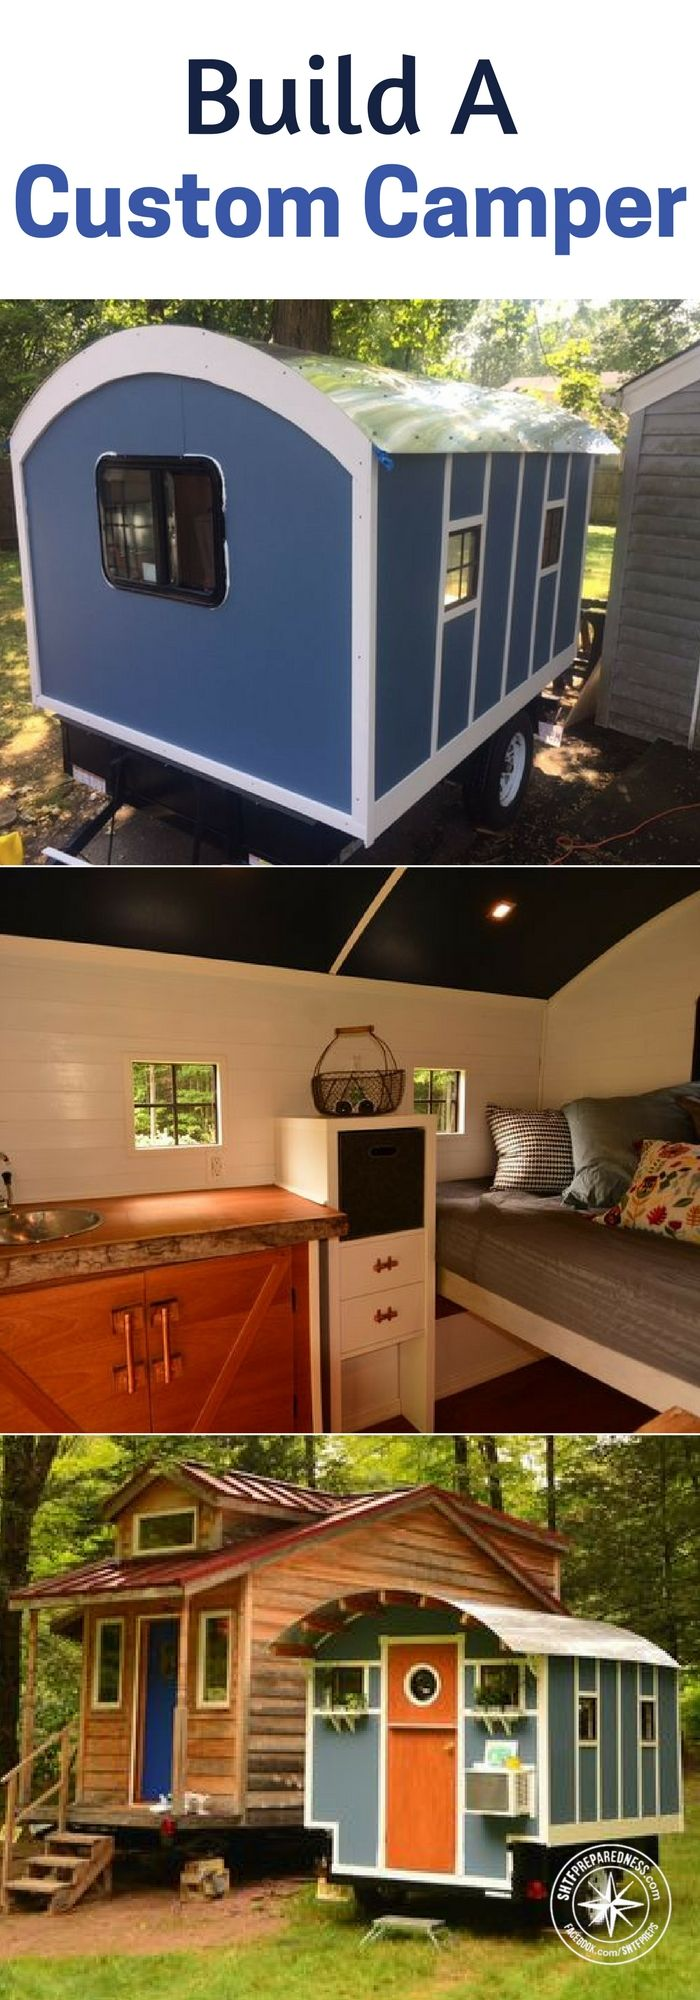 Build A Custom Camper - This little camper design could be an answer to your concerns about the bugout. We are always looking at better ways to bugout.